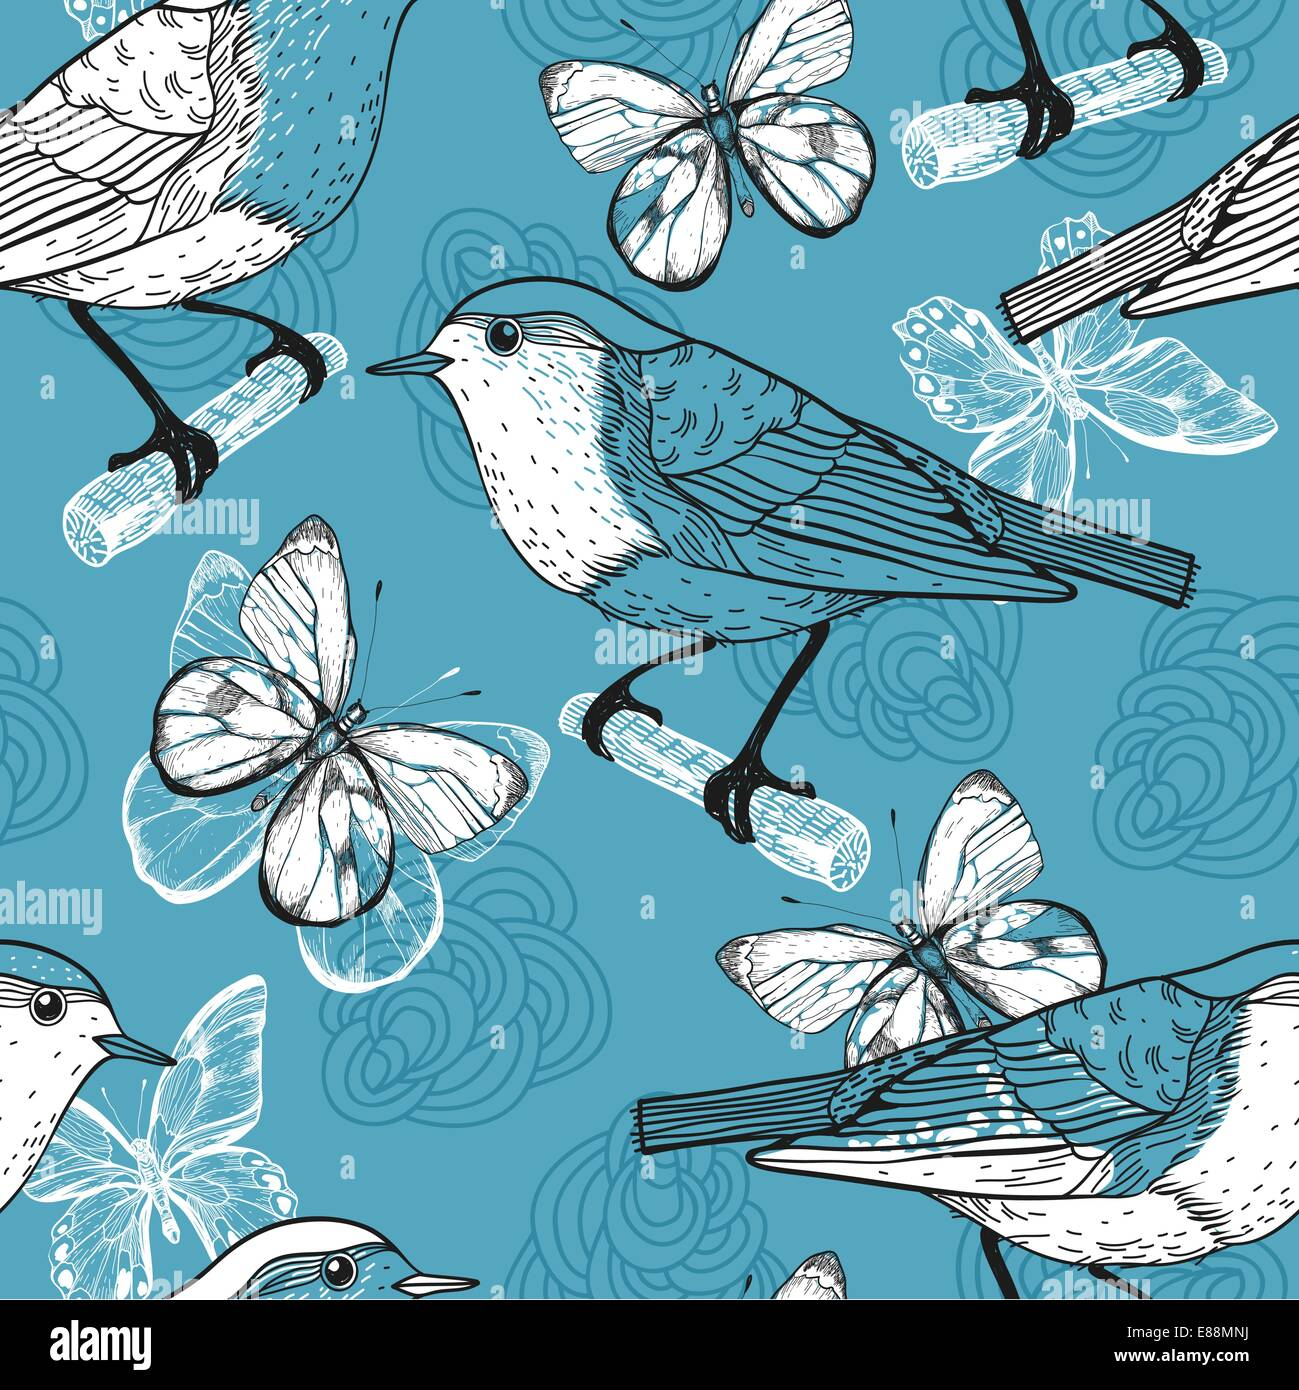 Motif transparent vecteur d'oiseaux et de papillons Photo Stock